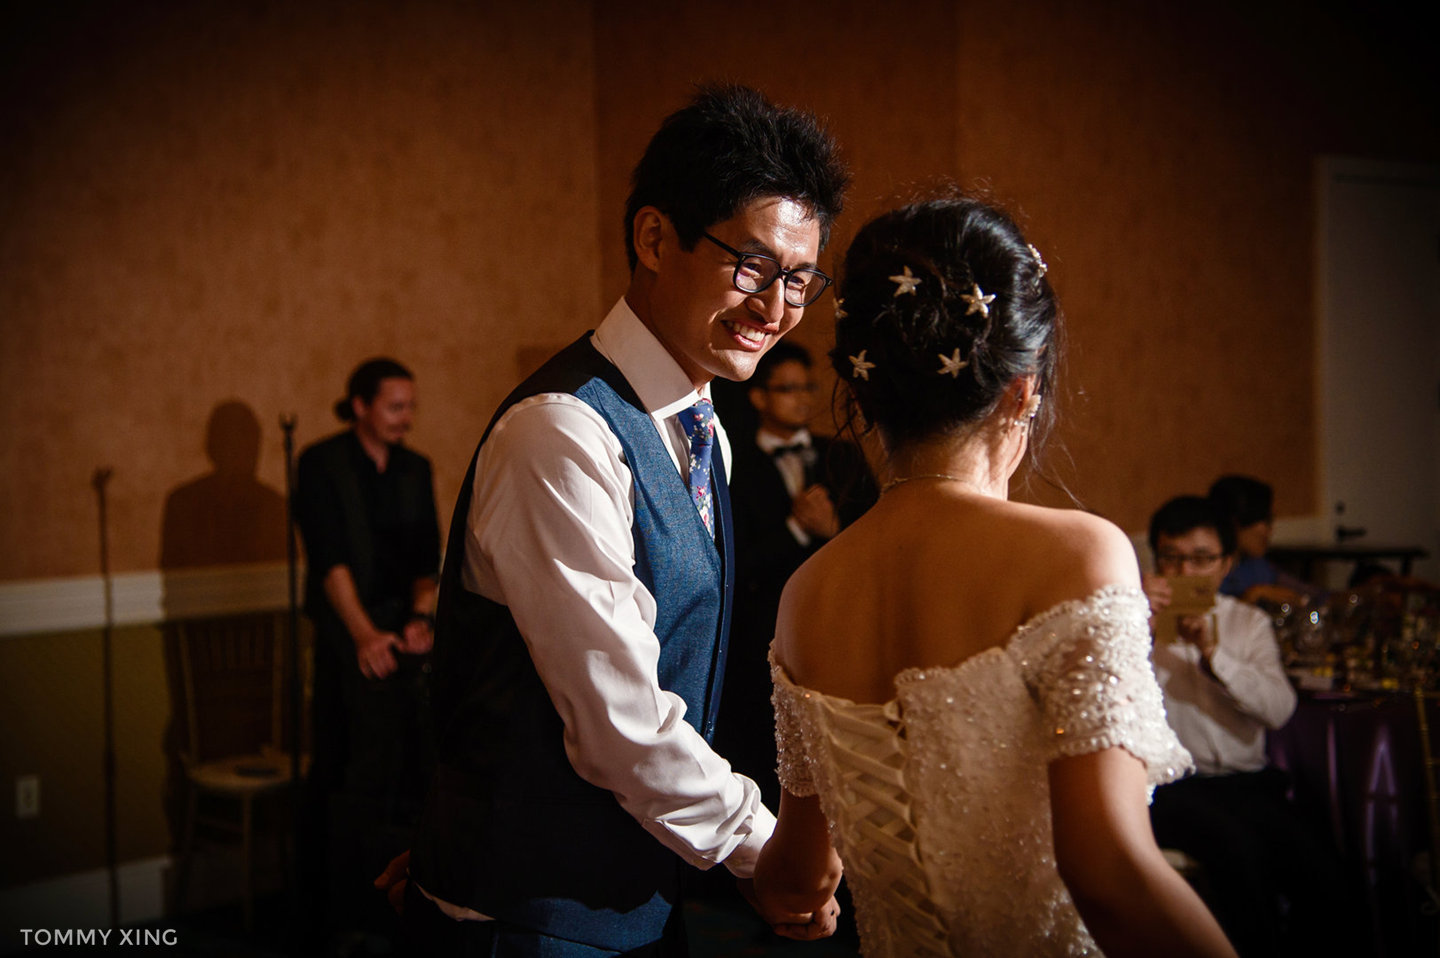 Paradise Point Resort Wedding Xiaolu & Bin San Diego 圣地亚哥婚礼摄影跟拍 Tommy Xing Photography 洛杉矶婚礼婚纱照摄影师 225.jpg